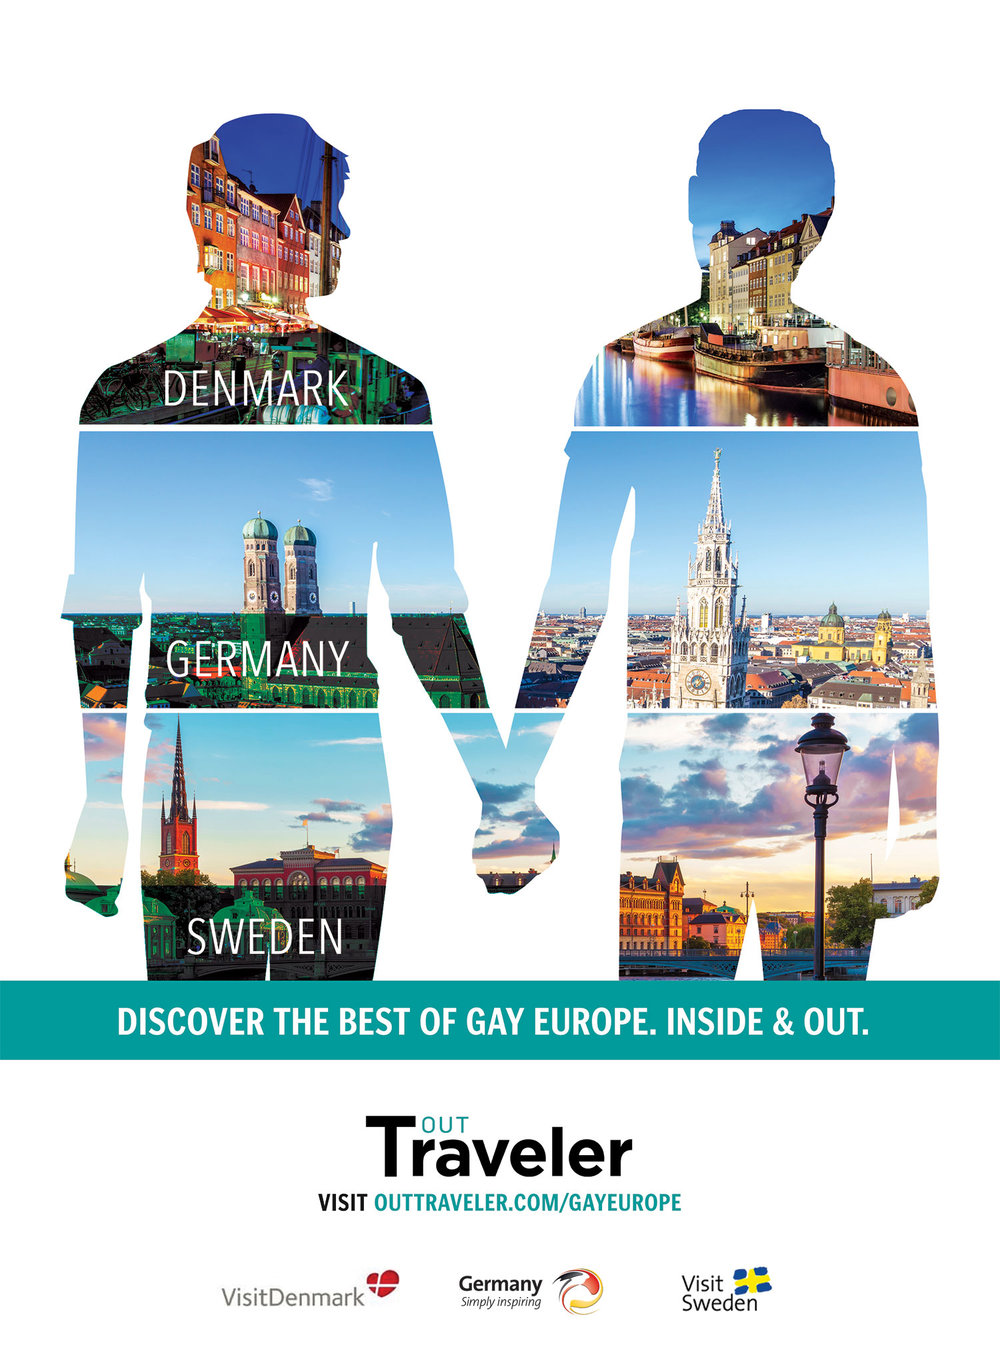 Massive social media promotion, including a sponsored Instagram contest rewarded two LGBT traveler's with a trip to experience each city for themselves.